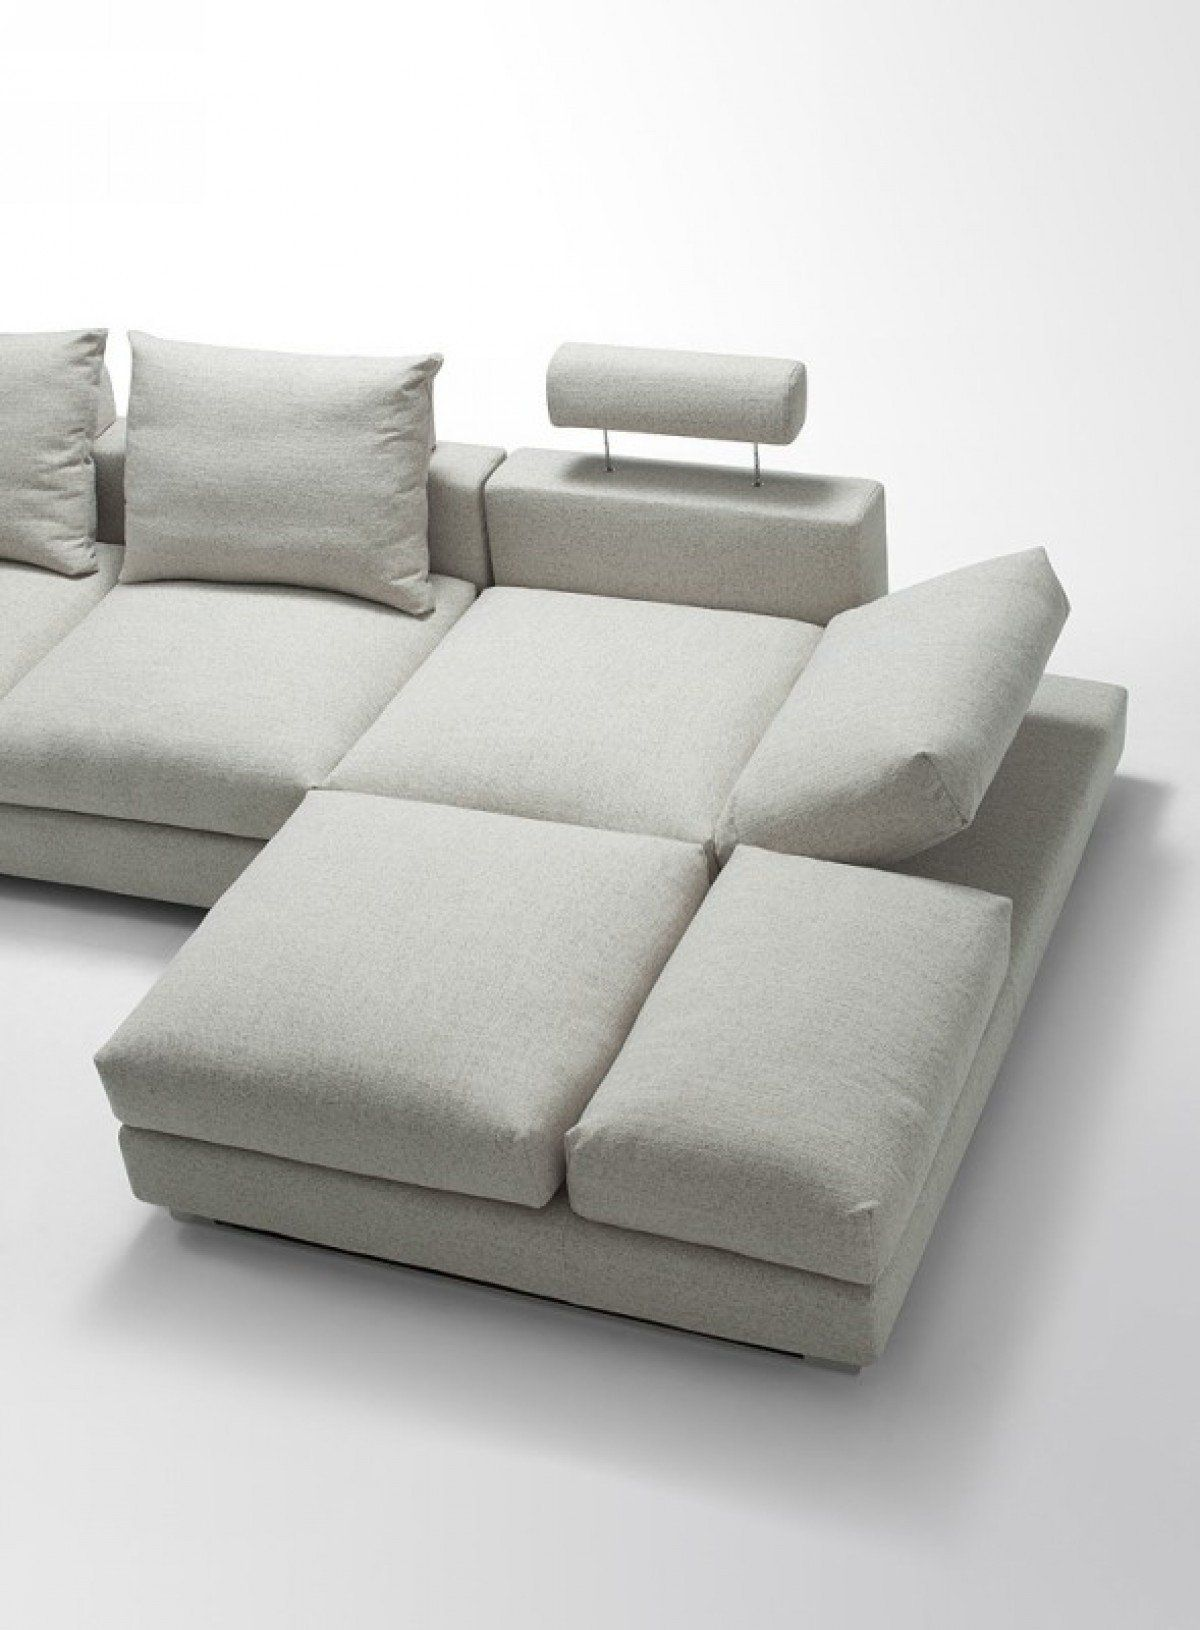 Divani Casa Vasto Modern Fabric Sectional Sofa With Down Feather